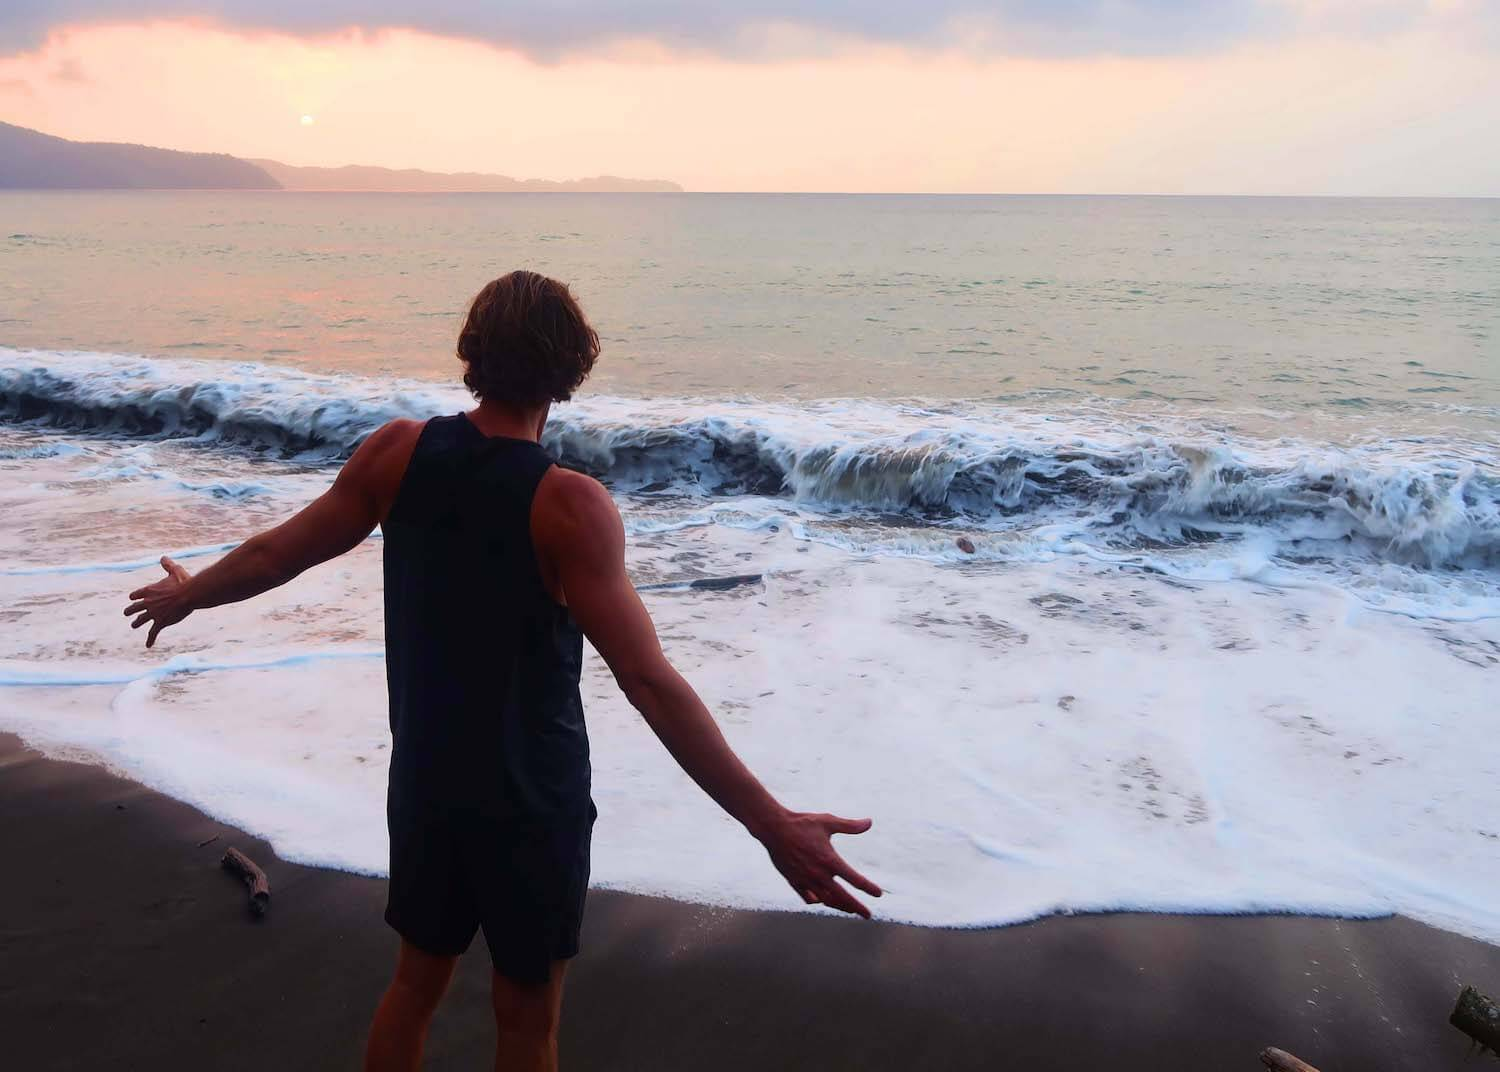 Chris embracing the solitude of Playa Mecana on Colombia's Pacific Coast